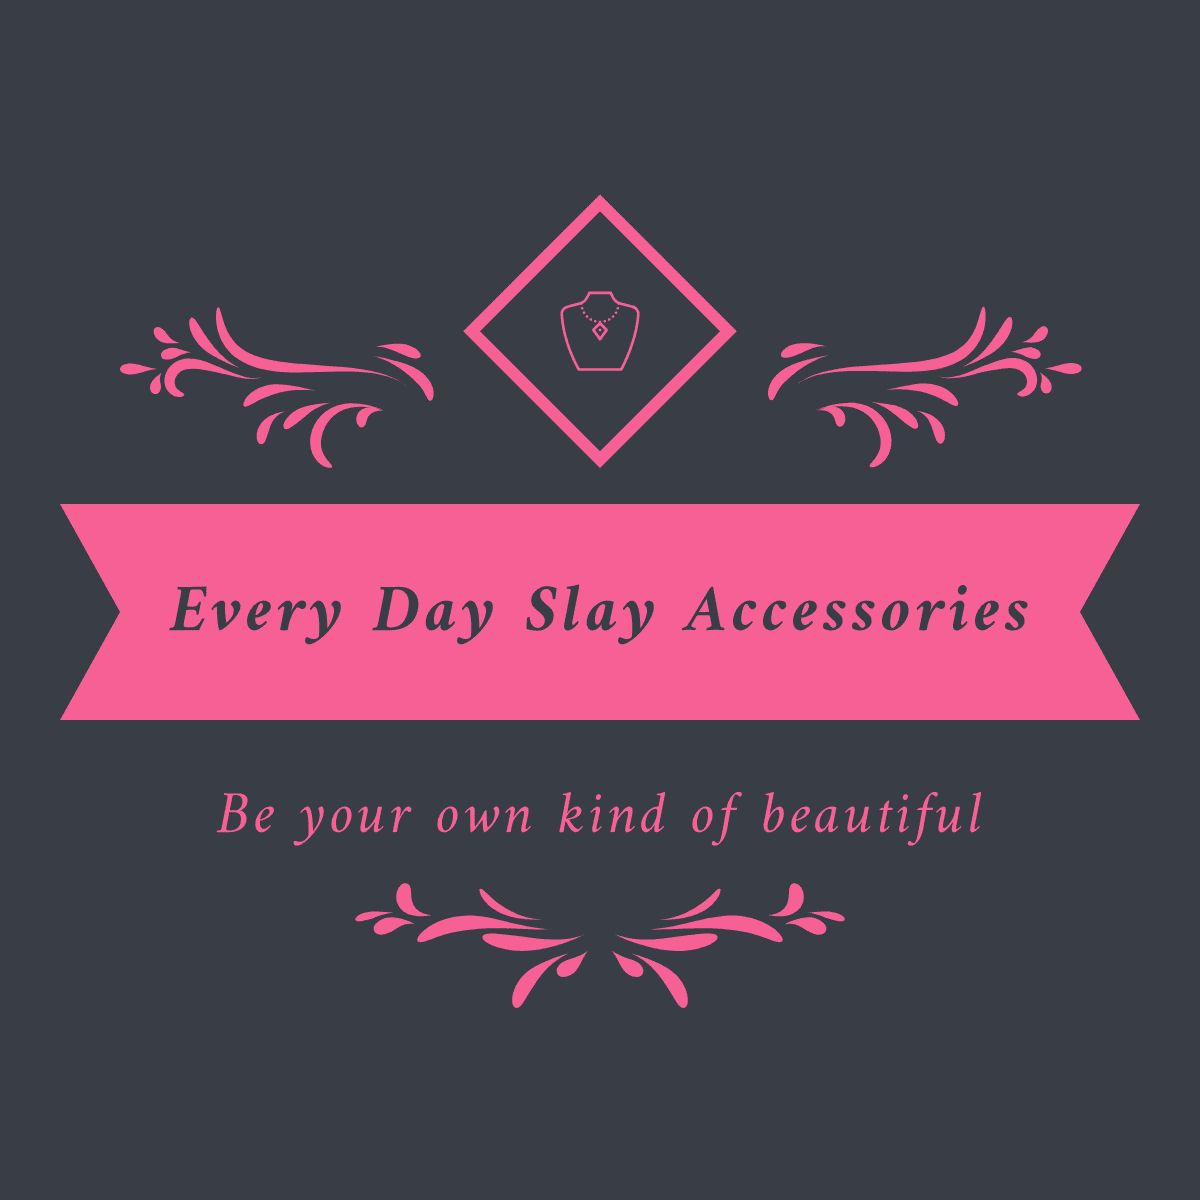 Every Day Slay Accessories